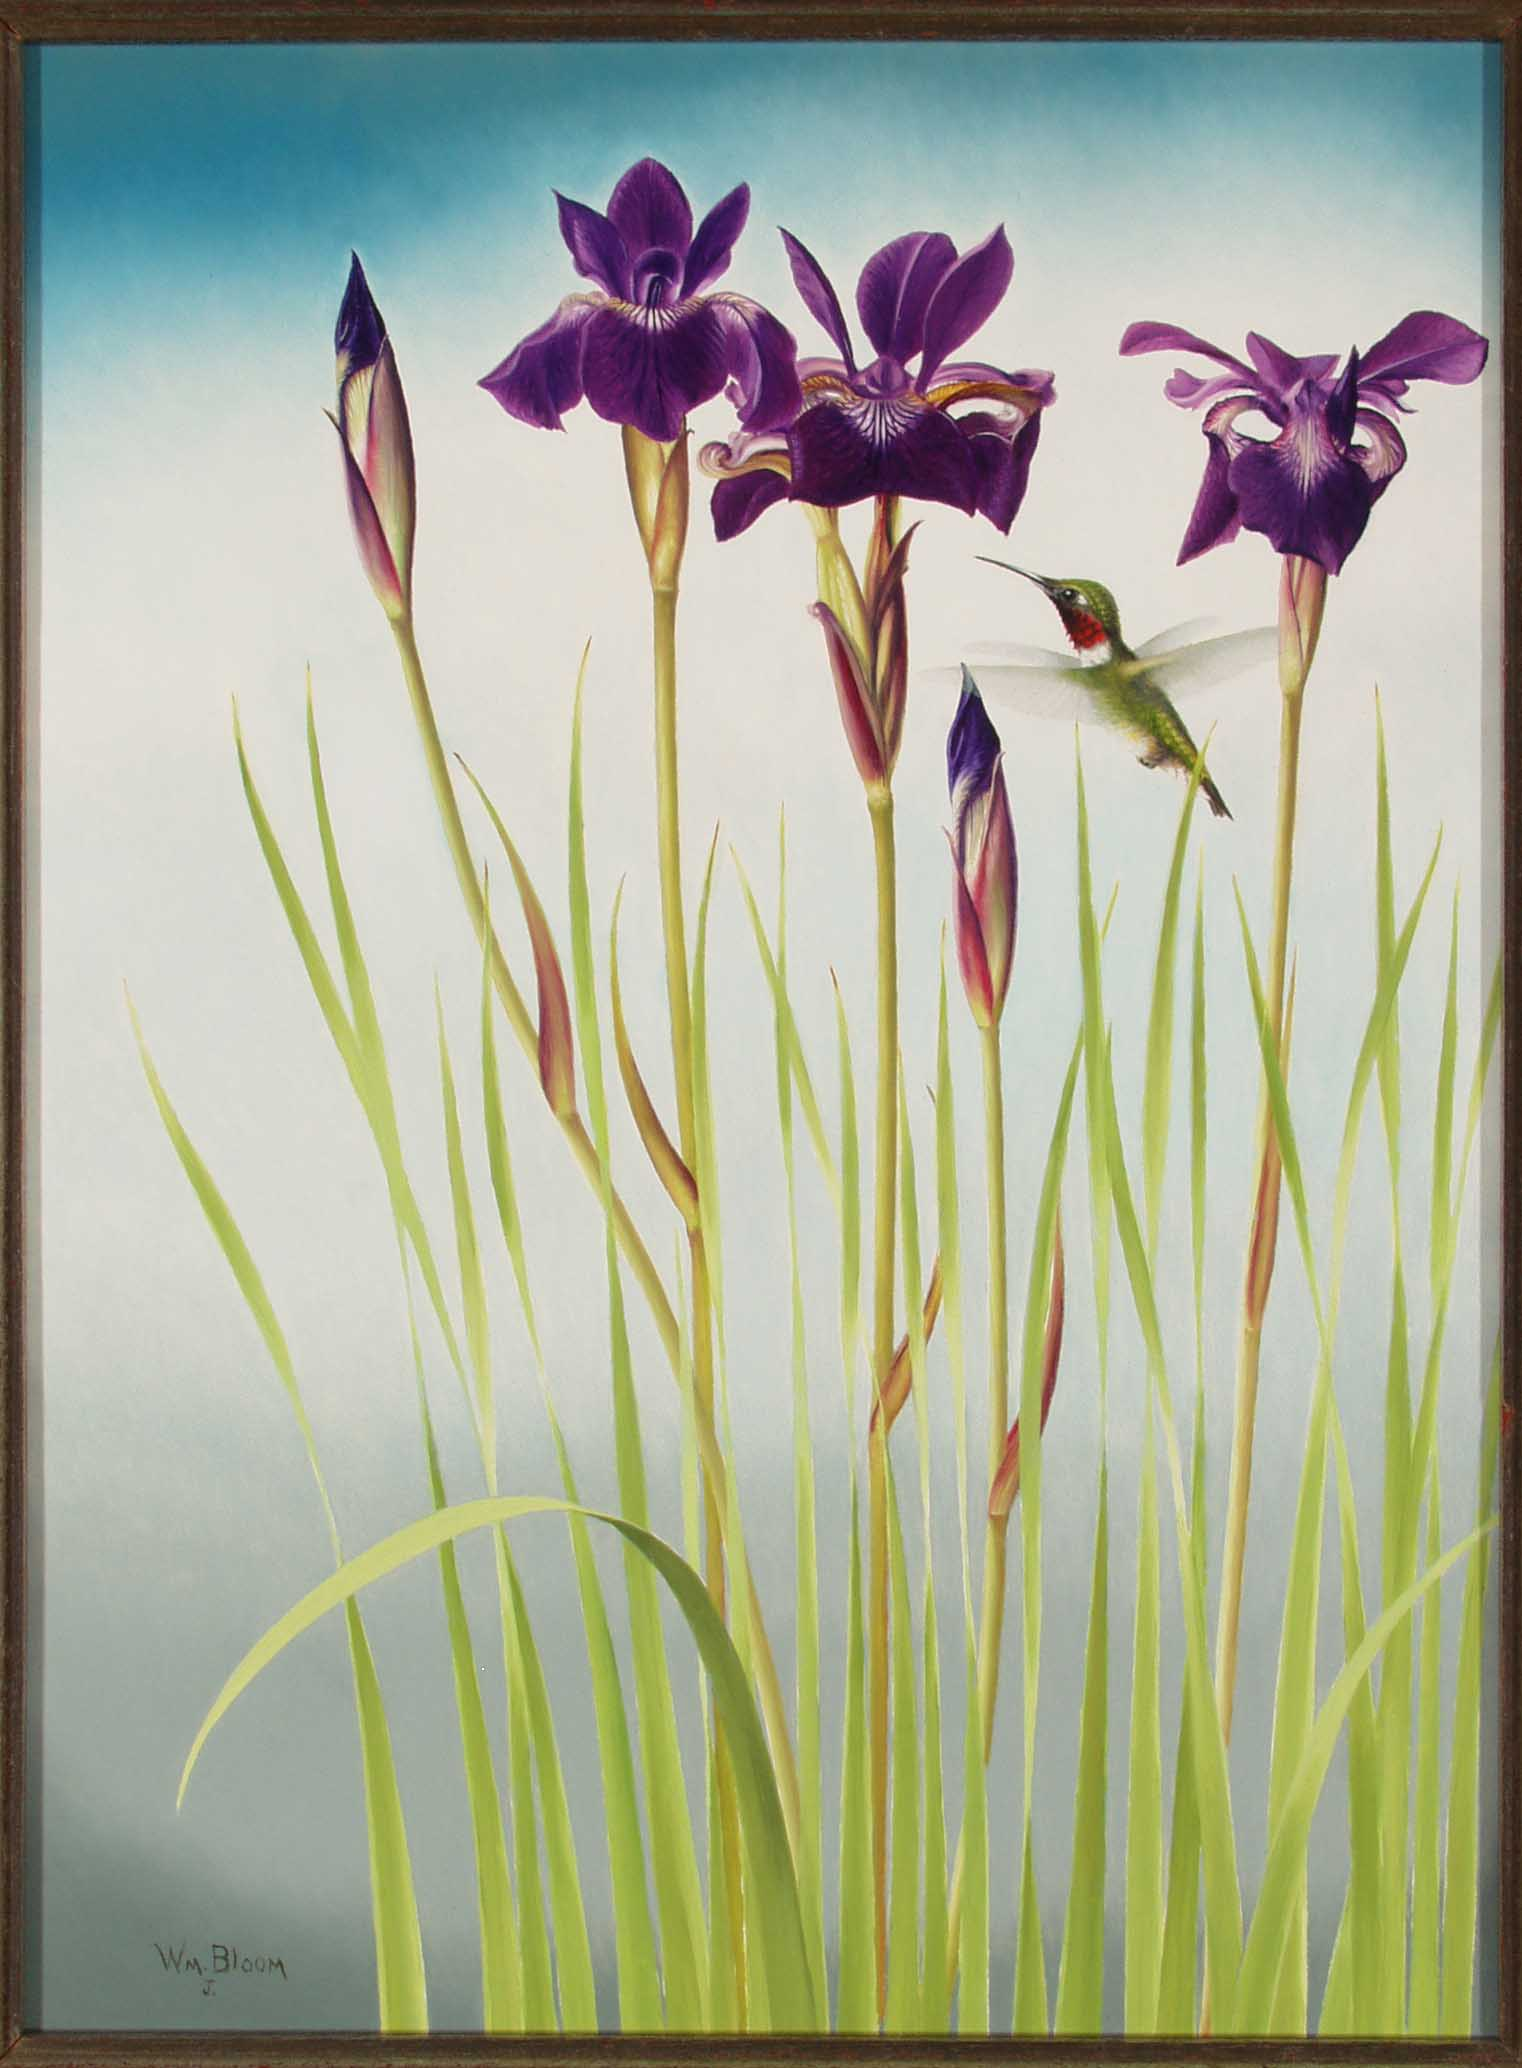 """June's Siberian Iris"" William Bloom Opens in new window"